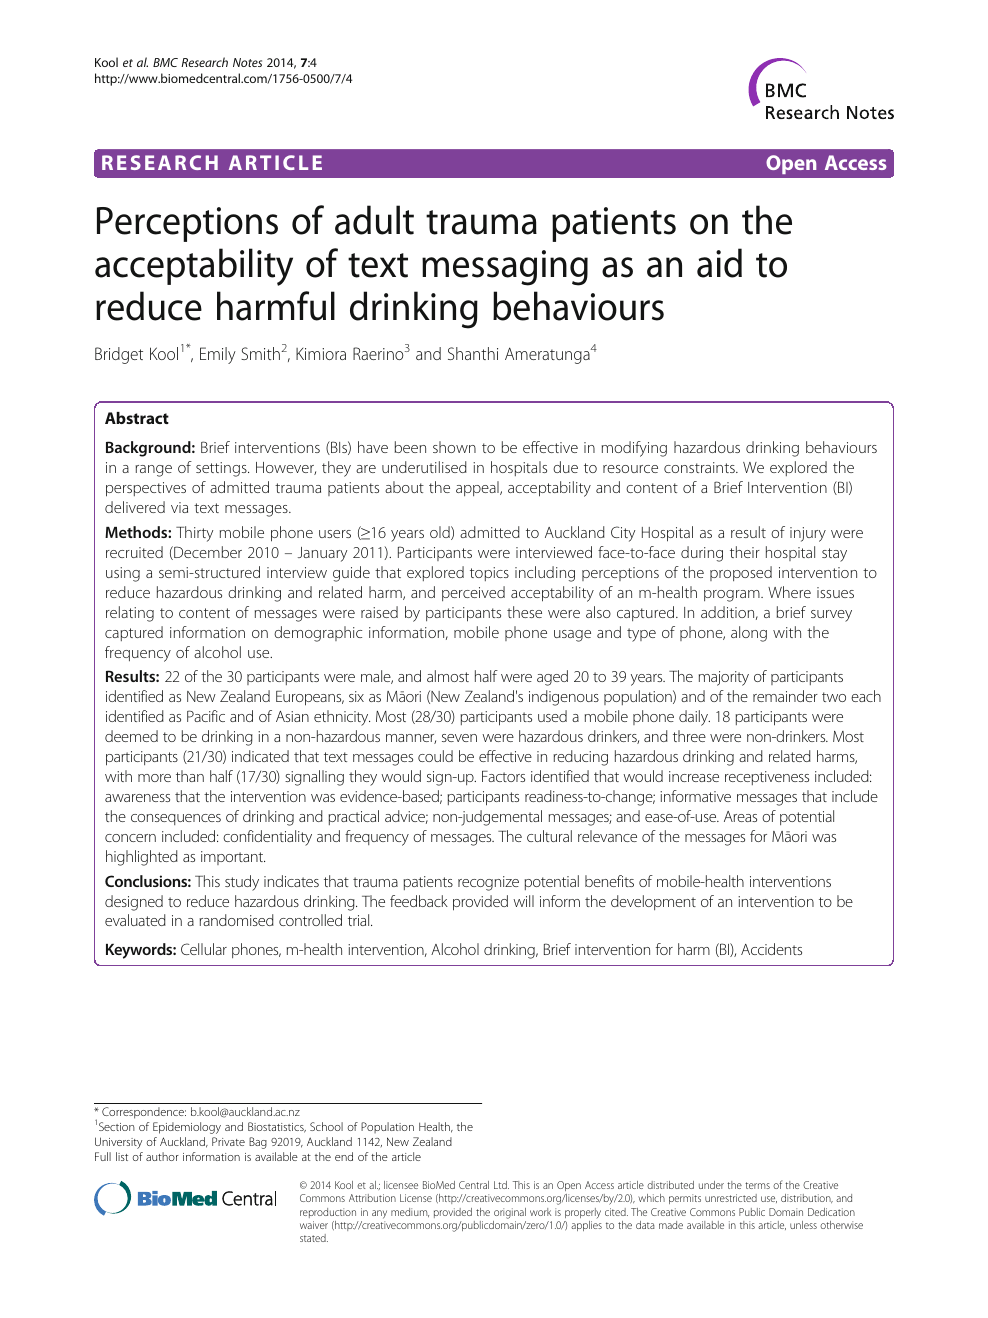 Perceptions of adult trauma patients on the acceptability of